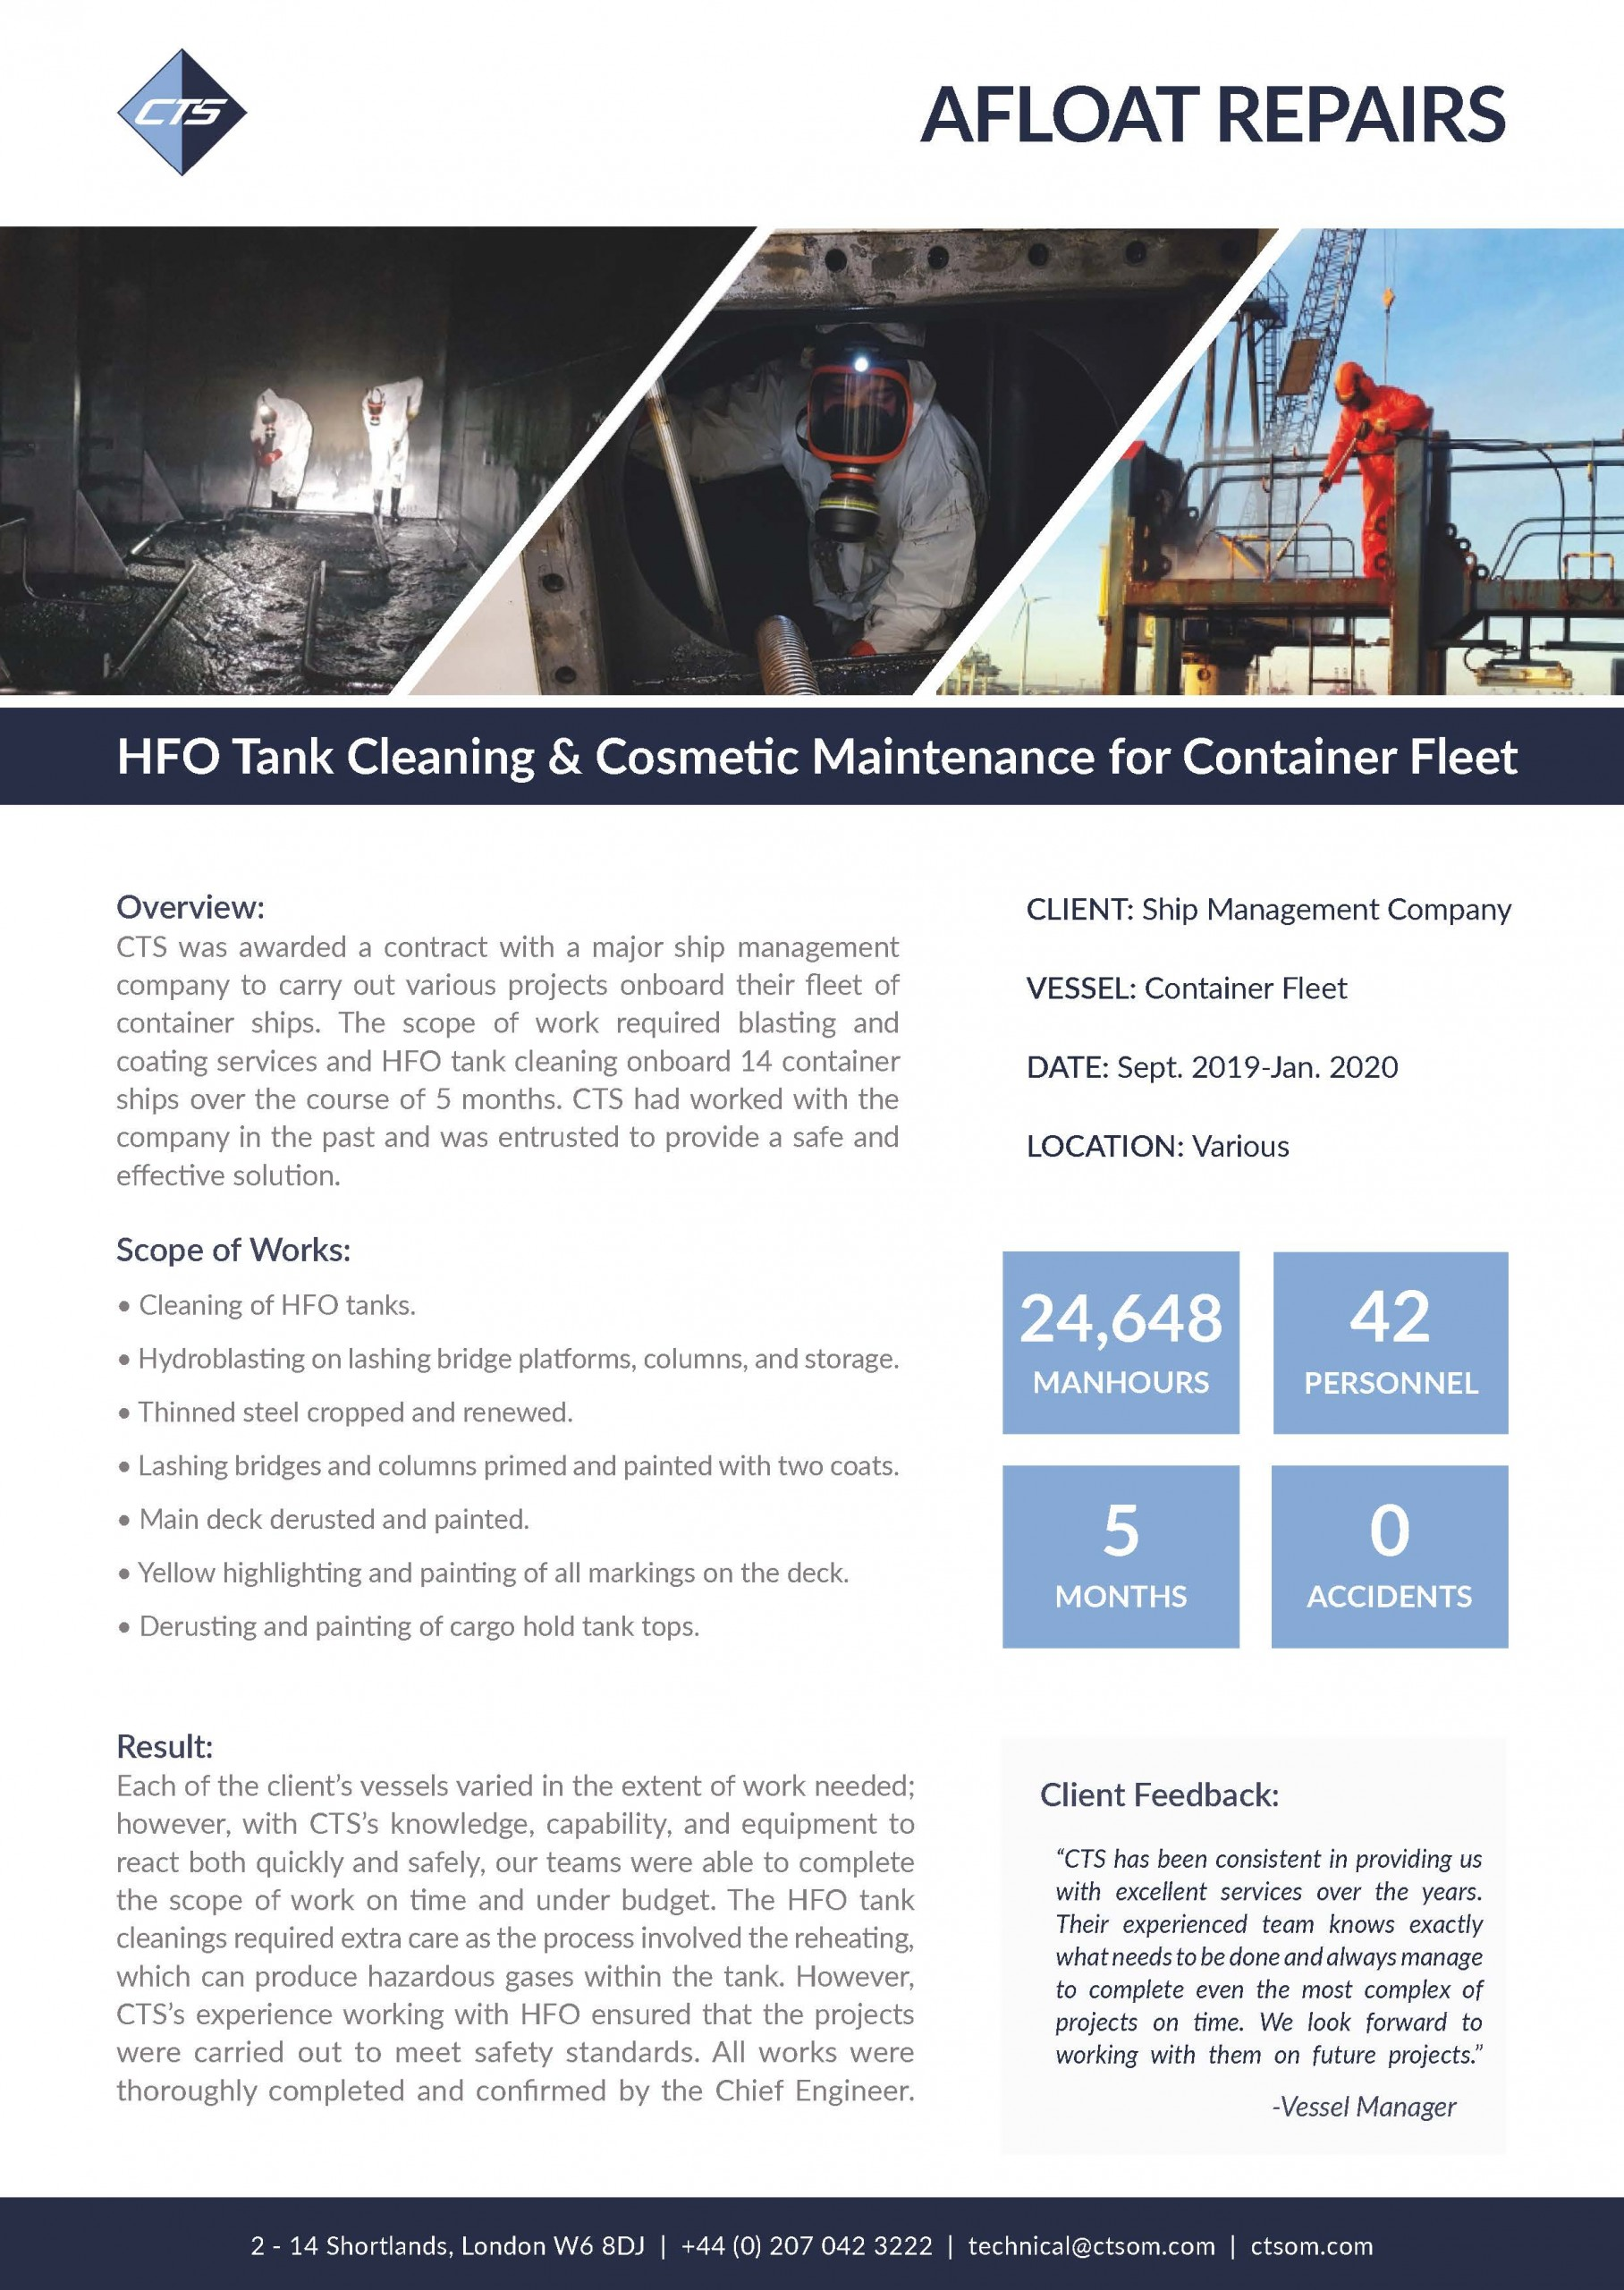 HFO Tank Cleaning and Cosmetic Maintenance for Fleet